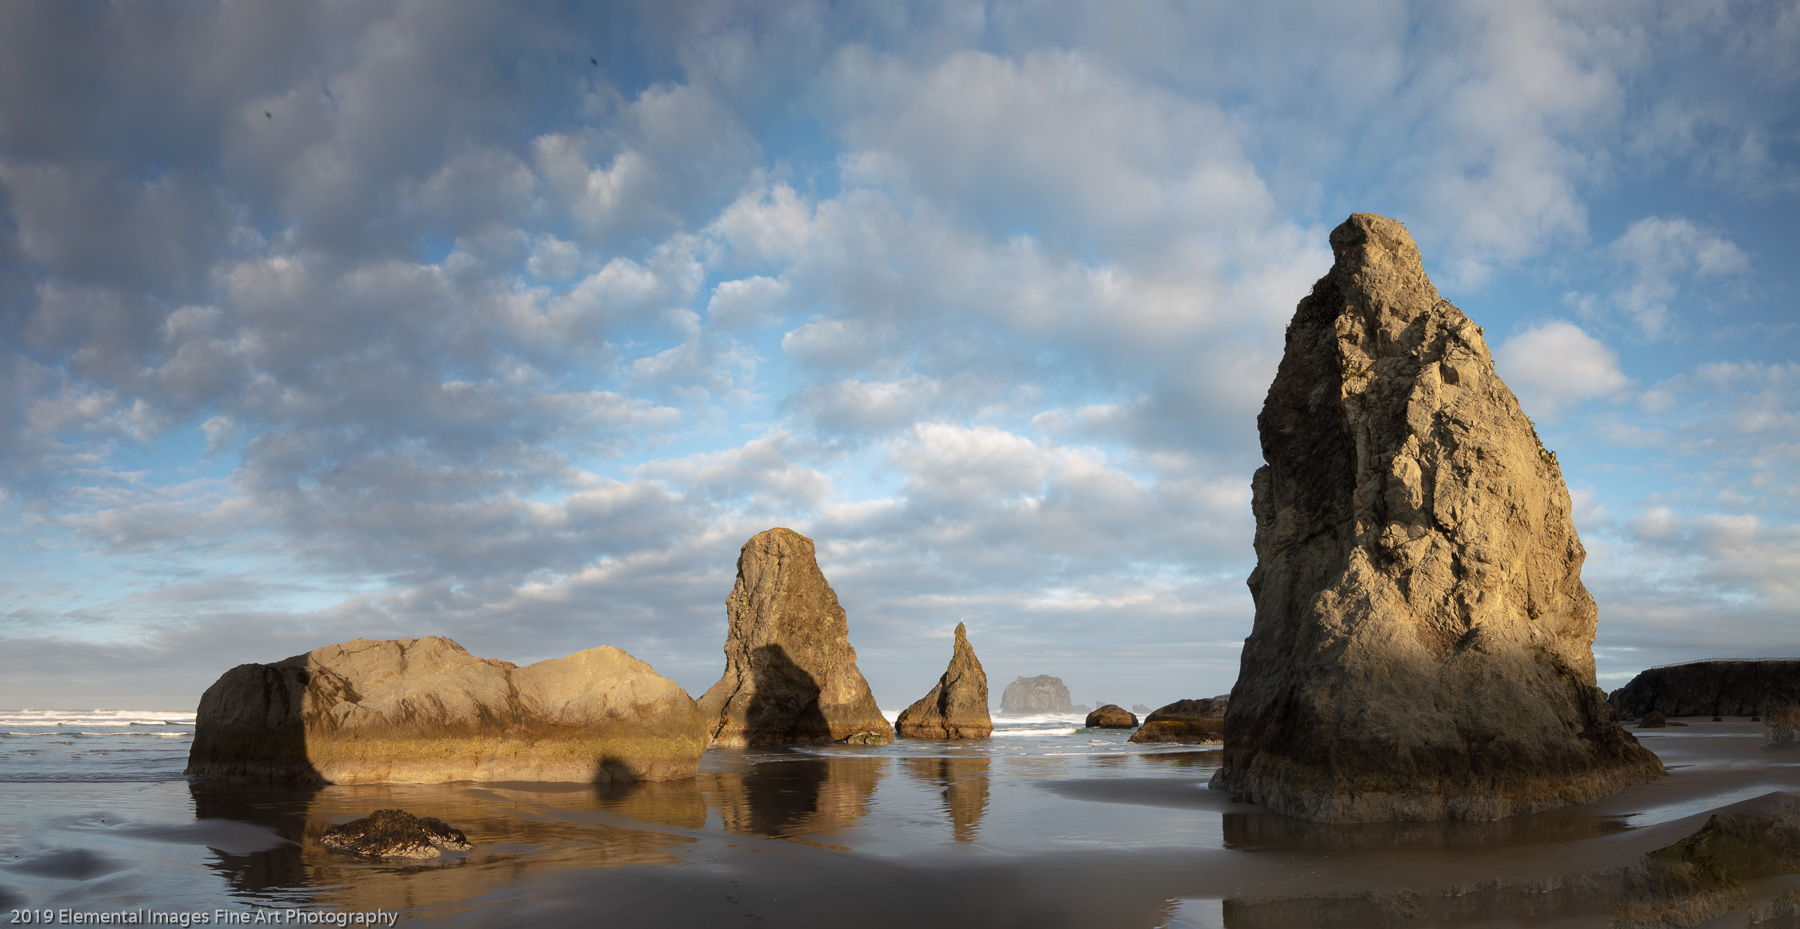 Bandon Sea Stacks | Bandon | OR | USA - © 2019 Elemental Images Fine Art Photography - All Rights Reserved Worldwide